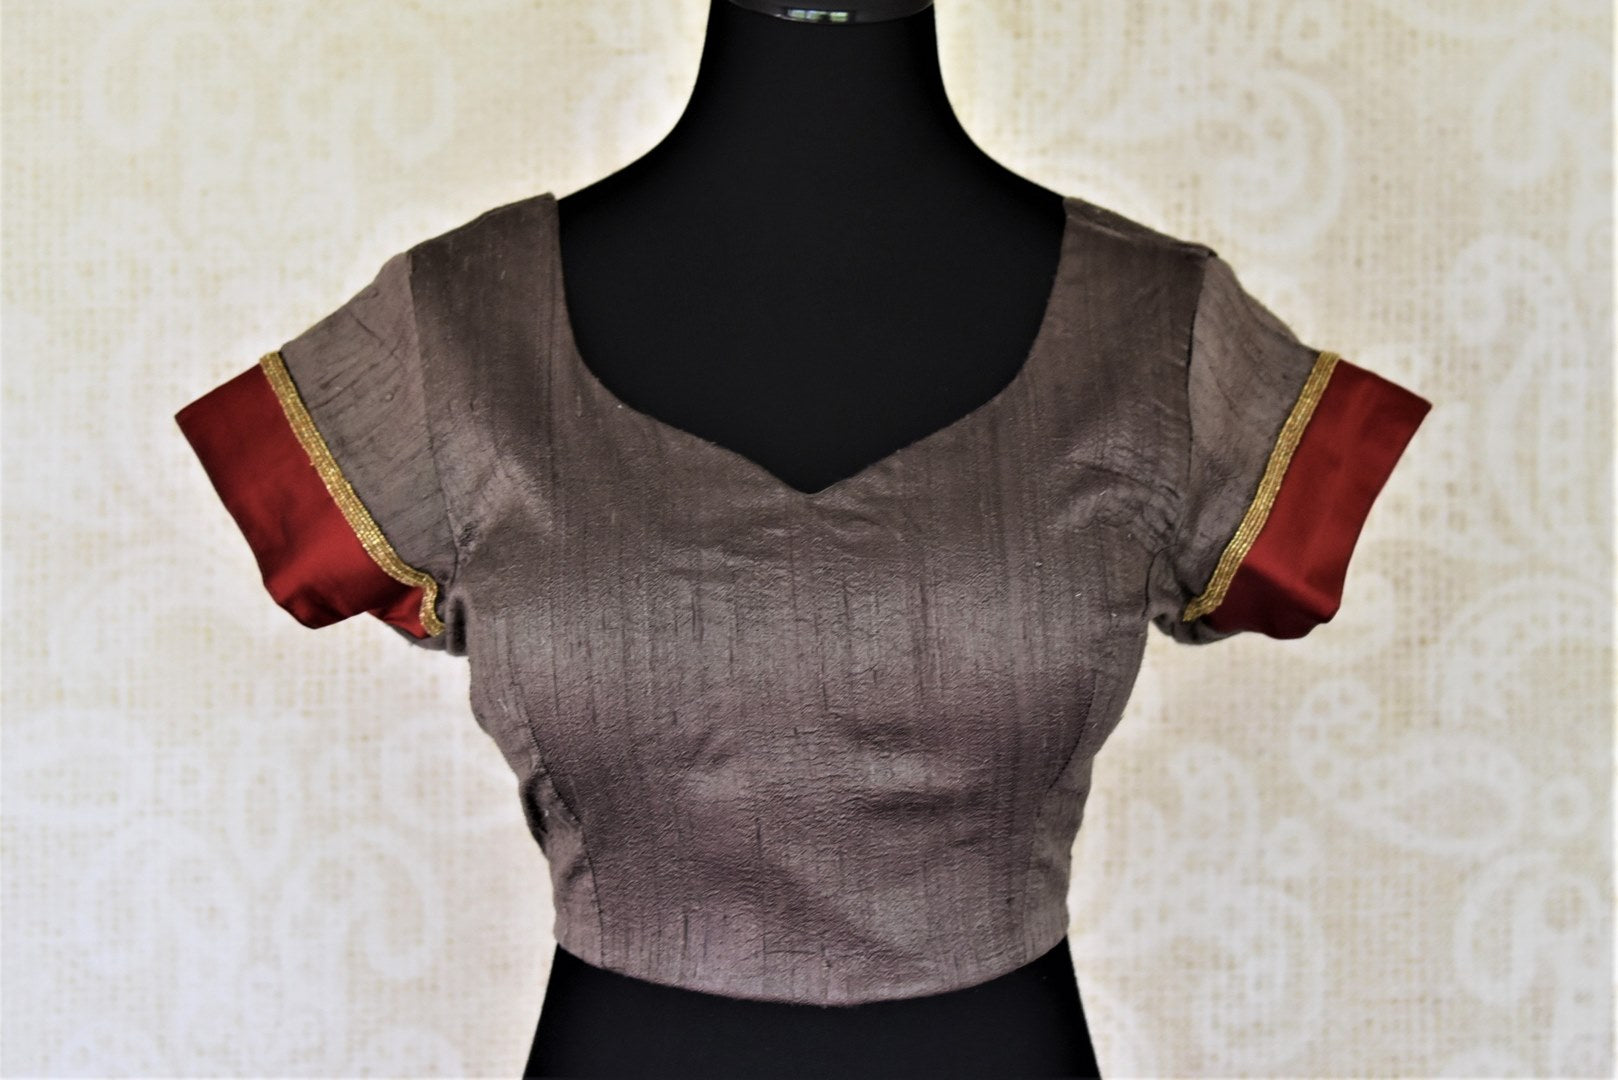 Shop dark grey silk sari saree blouse online in USA with red border on sleeves. Complete your ethnic saree look with designer blouses, readymade sari blouse, embroidered saree blouse from Pure Elegance Indian saree store in USA.-full view